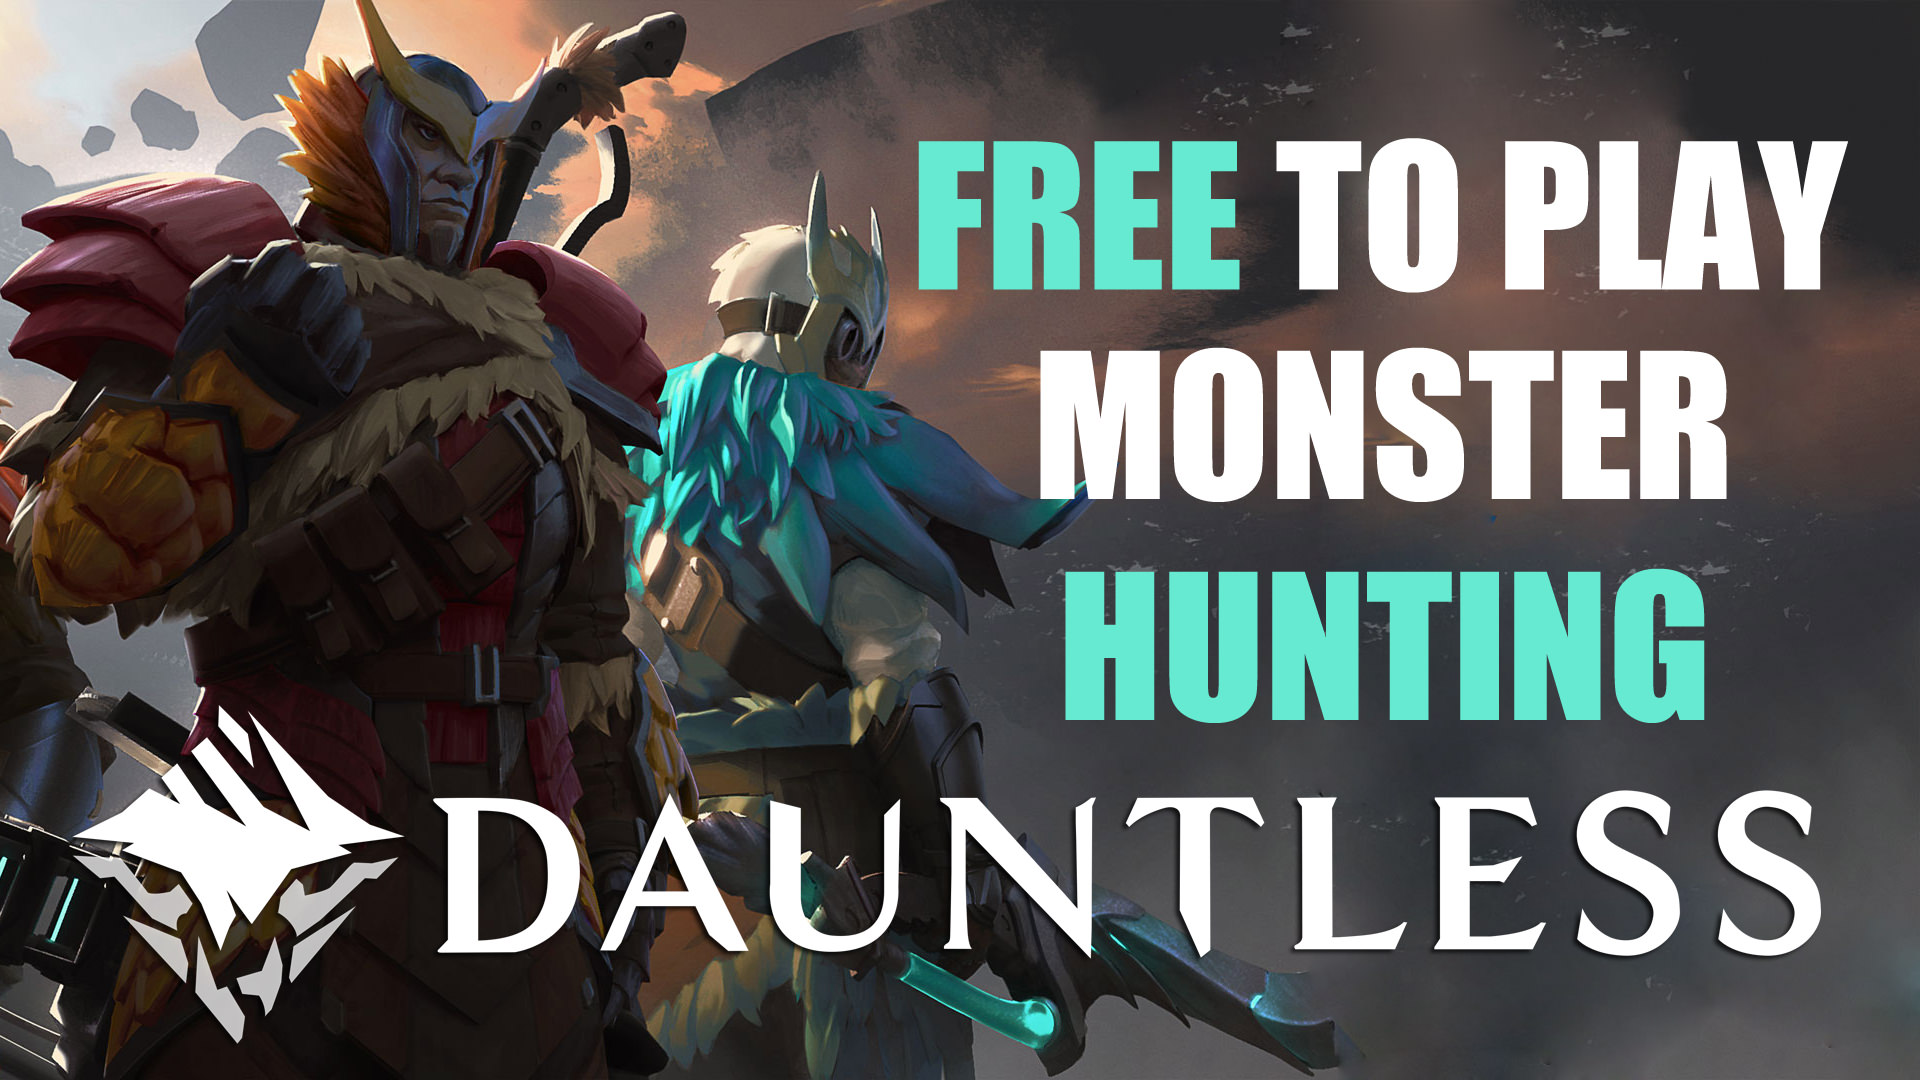 Dauntless Official Launch Overview: Free to Play Monster